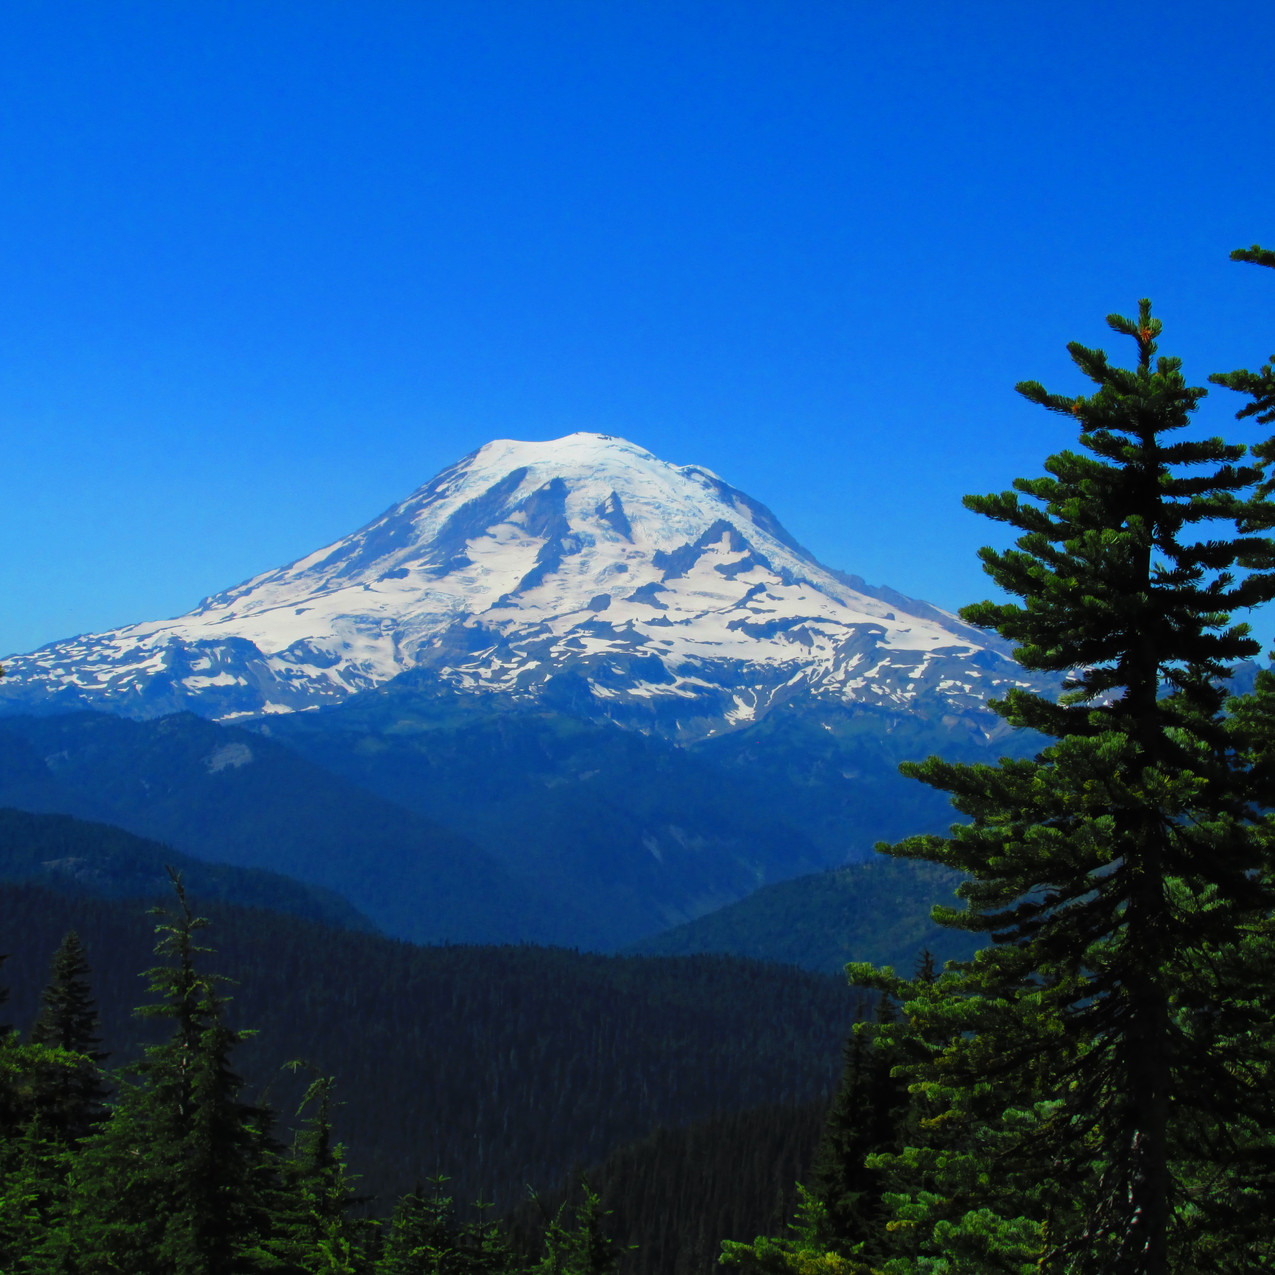 I was able to see the route Scott and I took on our failed attempt to climb Mt. Rainier earlier in the summer.